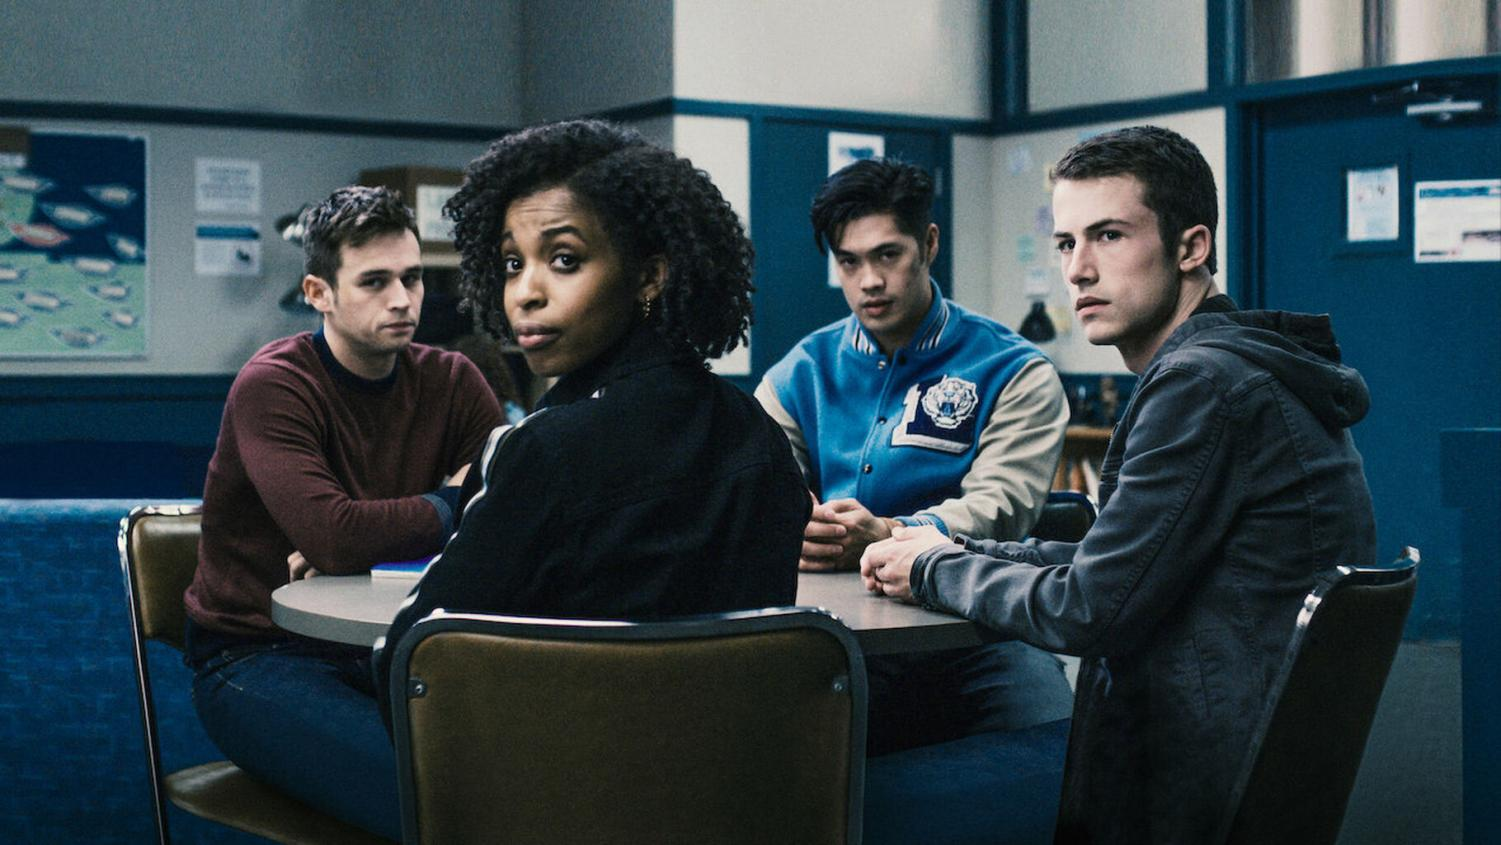 13 Reasons Why season three focuses around the death of Bryce Walker. The new season was released on Aug. 23, 2019.